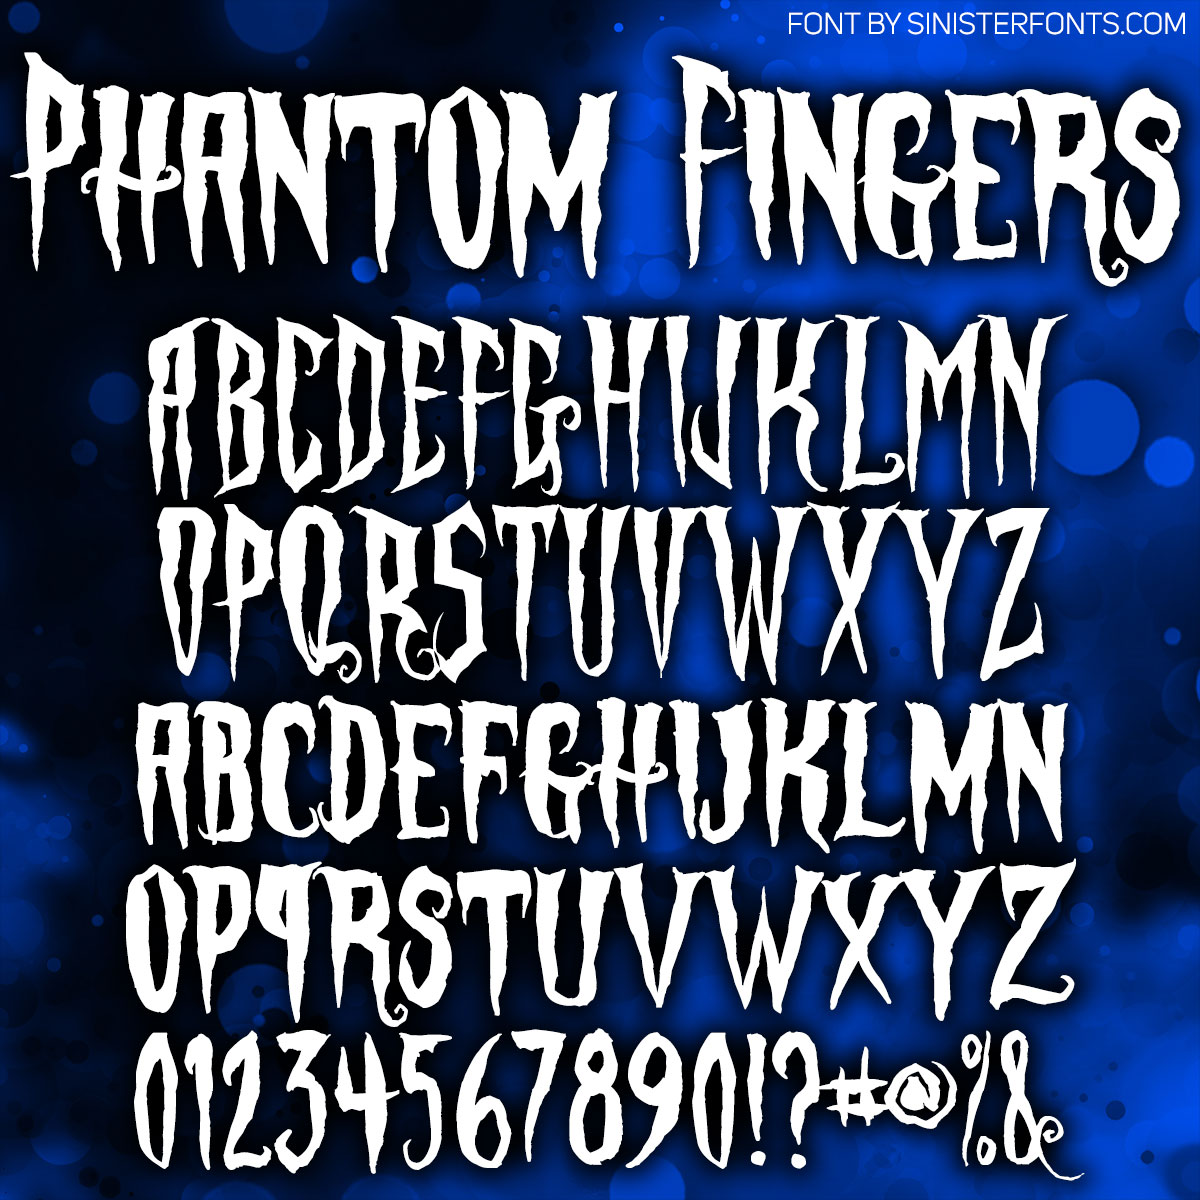 Phantom Fingers Font : Click to Download